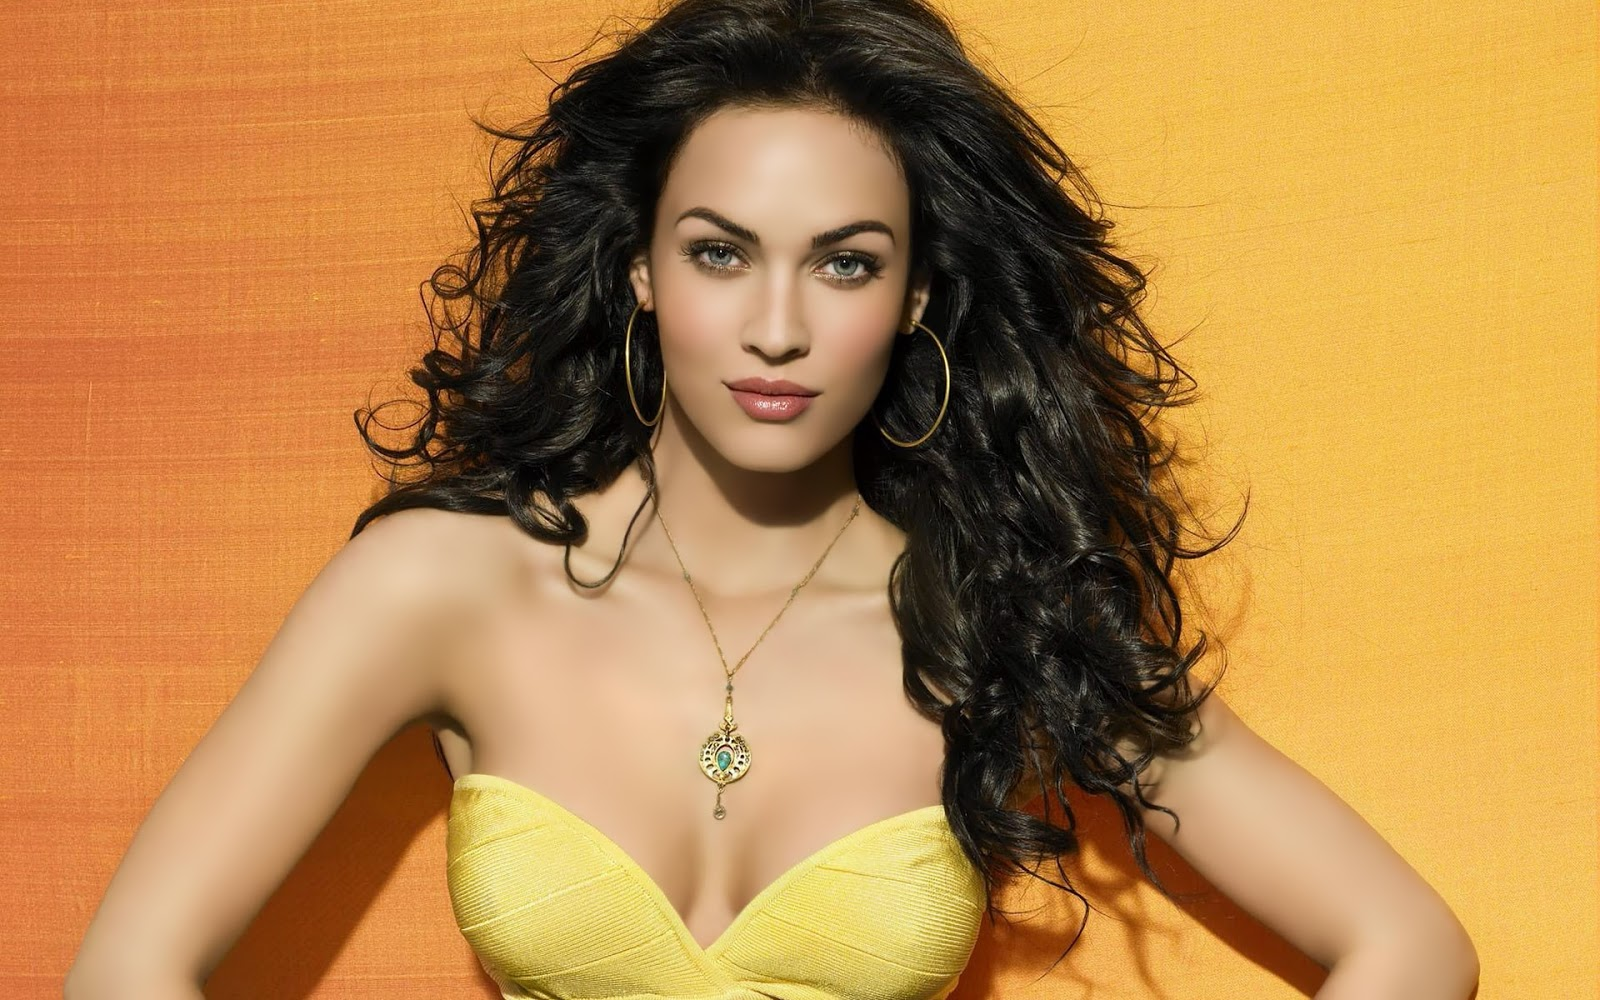 Chatter Busy Megan Fox Hd Wallpapers 1600x1000